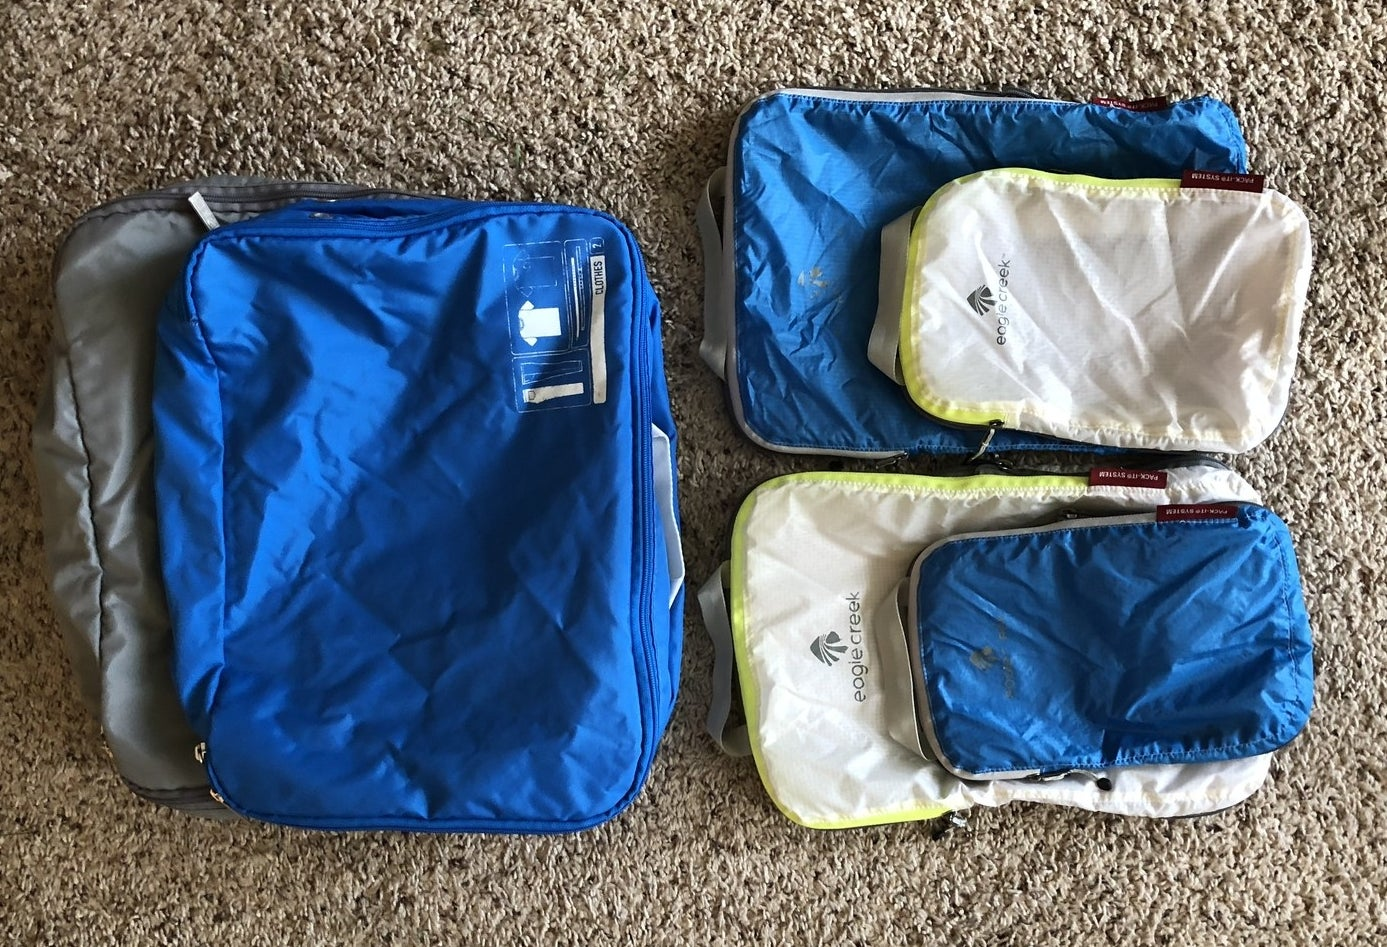 If there's one thing you should know about me, it's that I LOVE packing cubes. They are hands down my number one travel accessory, and I definitely wouldn't head out on a trip without them. I use two different kinds — Eagle Creek and Spacepak packing cubes — and they both let me pack way more than I would be able to without them by compressing all the air in between my clothes. Not only do they allow me to overpack like a champ, but they're also excellent for organizing your luggage (by separating types of clothing into different cubes, for instance).Get the Eagle Creek Pack-It two-piece set from Amazon for $28.95+ (available in five colors) and the Flight 001 Spacepak packing cube from Amazon for $46+ (available in four colors/patterns).